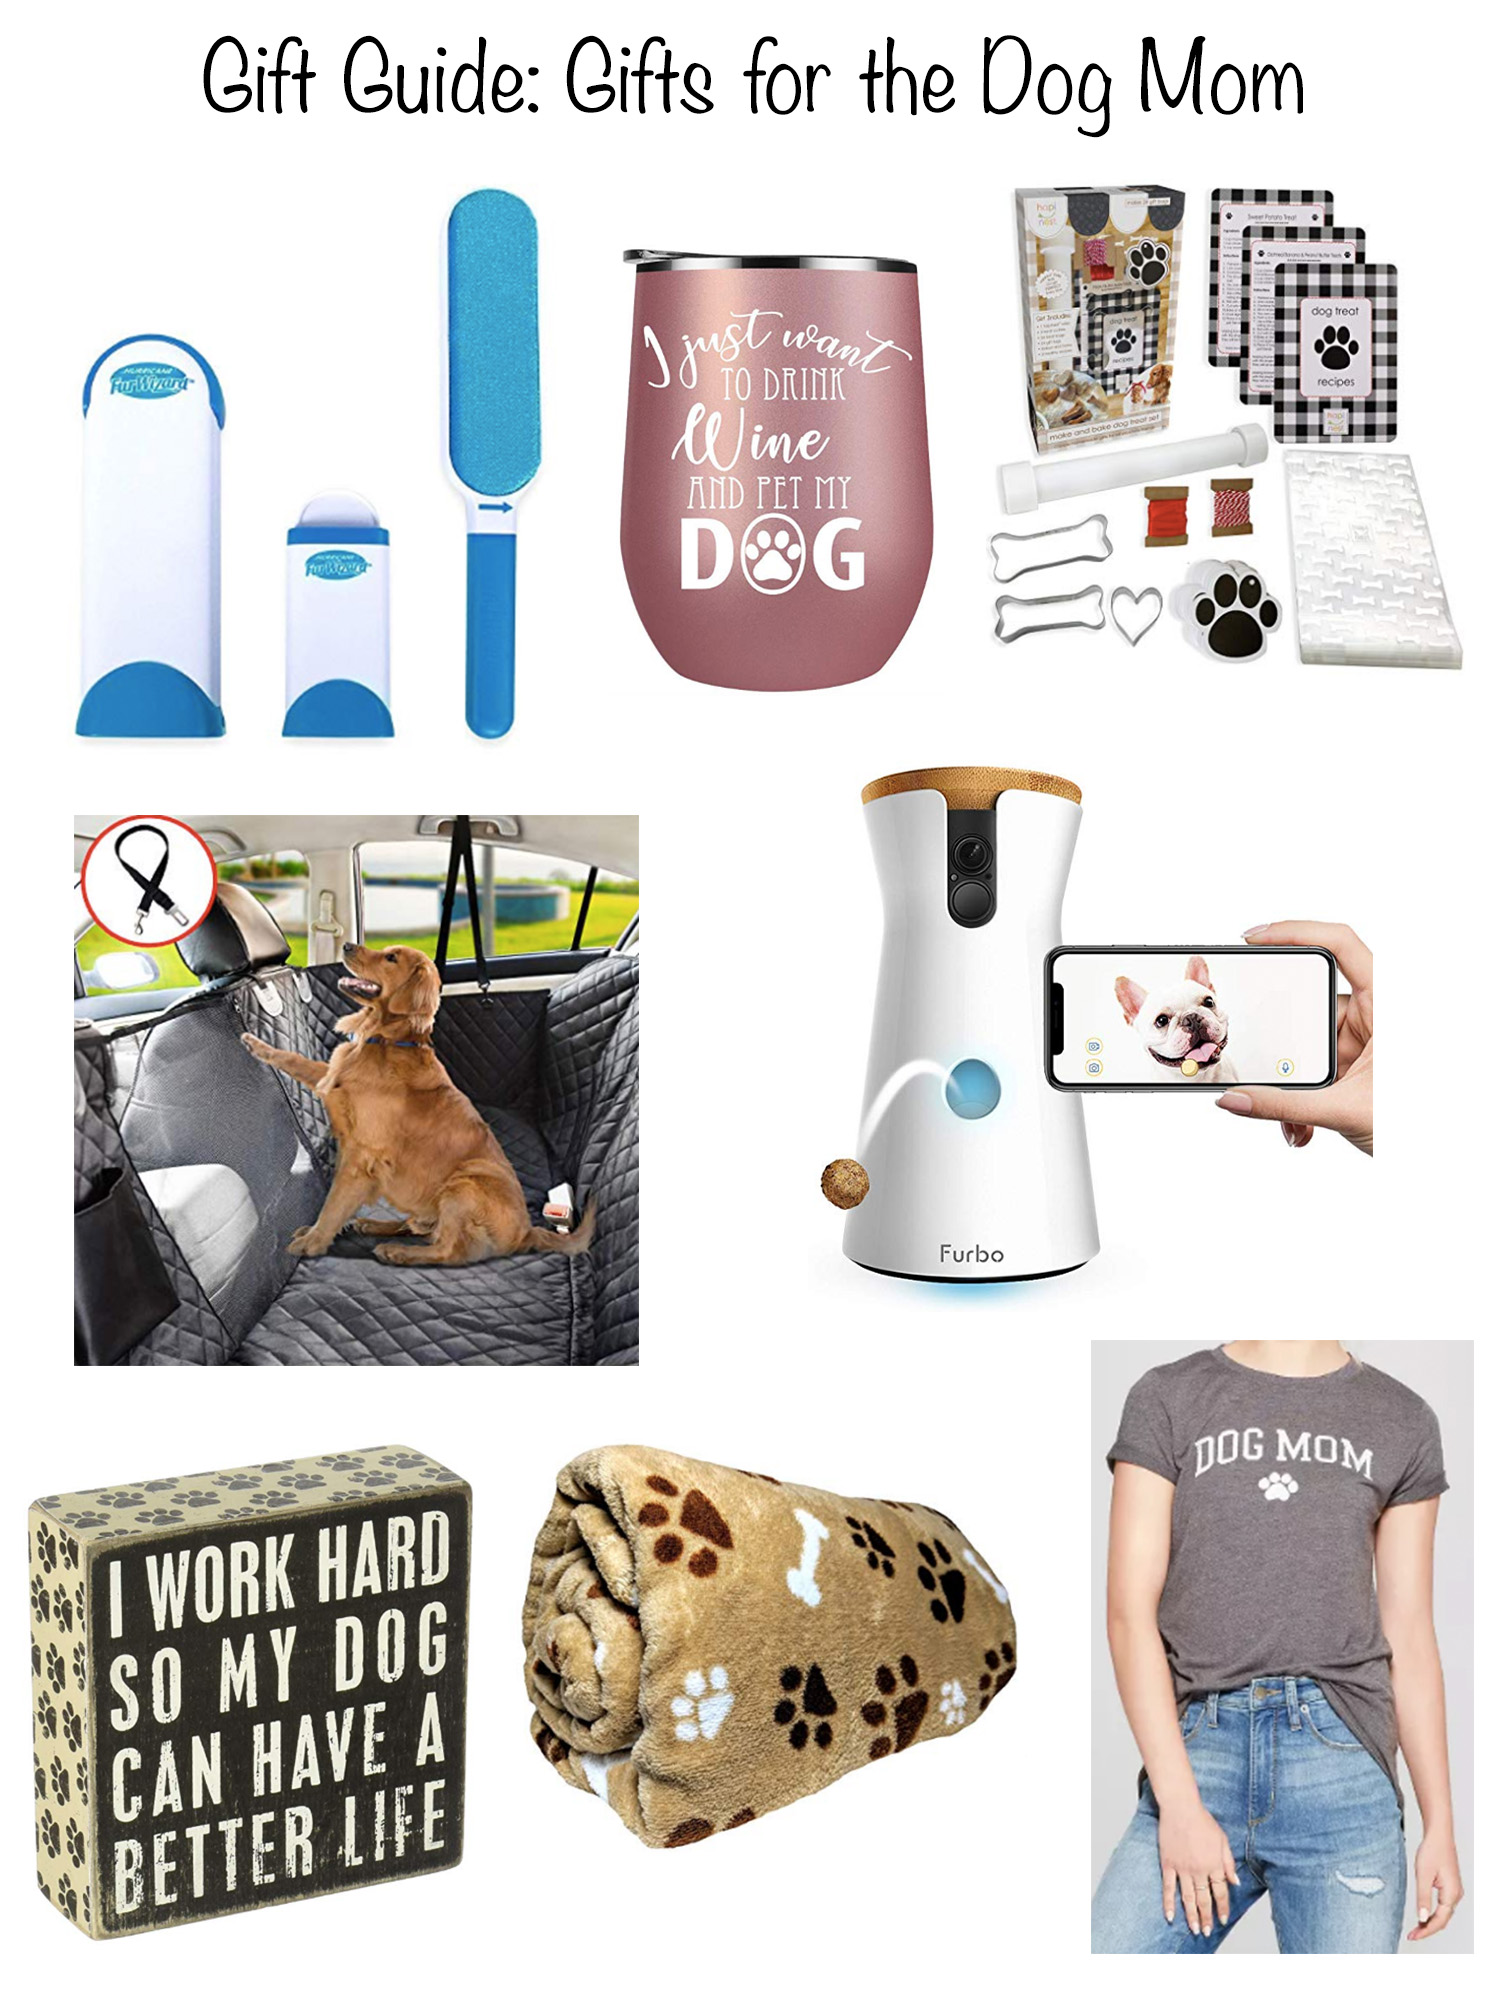 Gifts for the Dog Mom